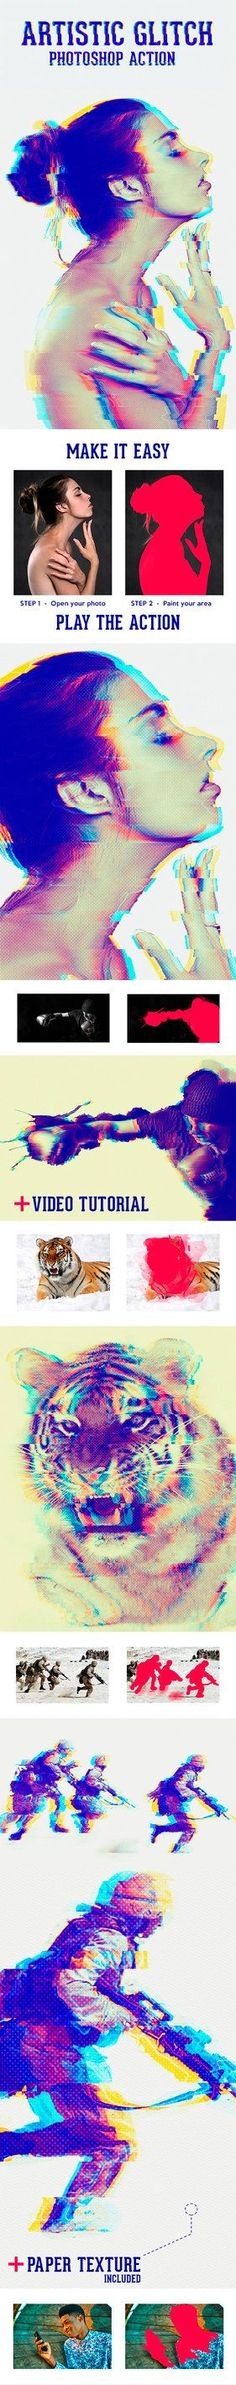 DOWNLOAD:     goo.gl/BrbKtDARTISTIC GLITCH ACTIONThis action turns your photo into amazing and colorful images with glitch distorsion.FeaturesWork with photos and text layerActi...